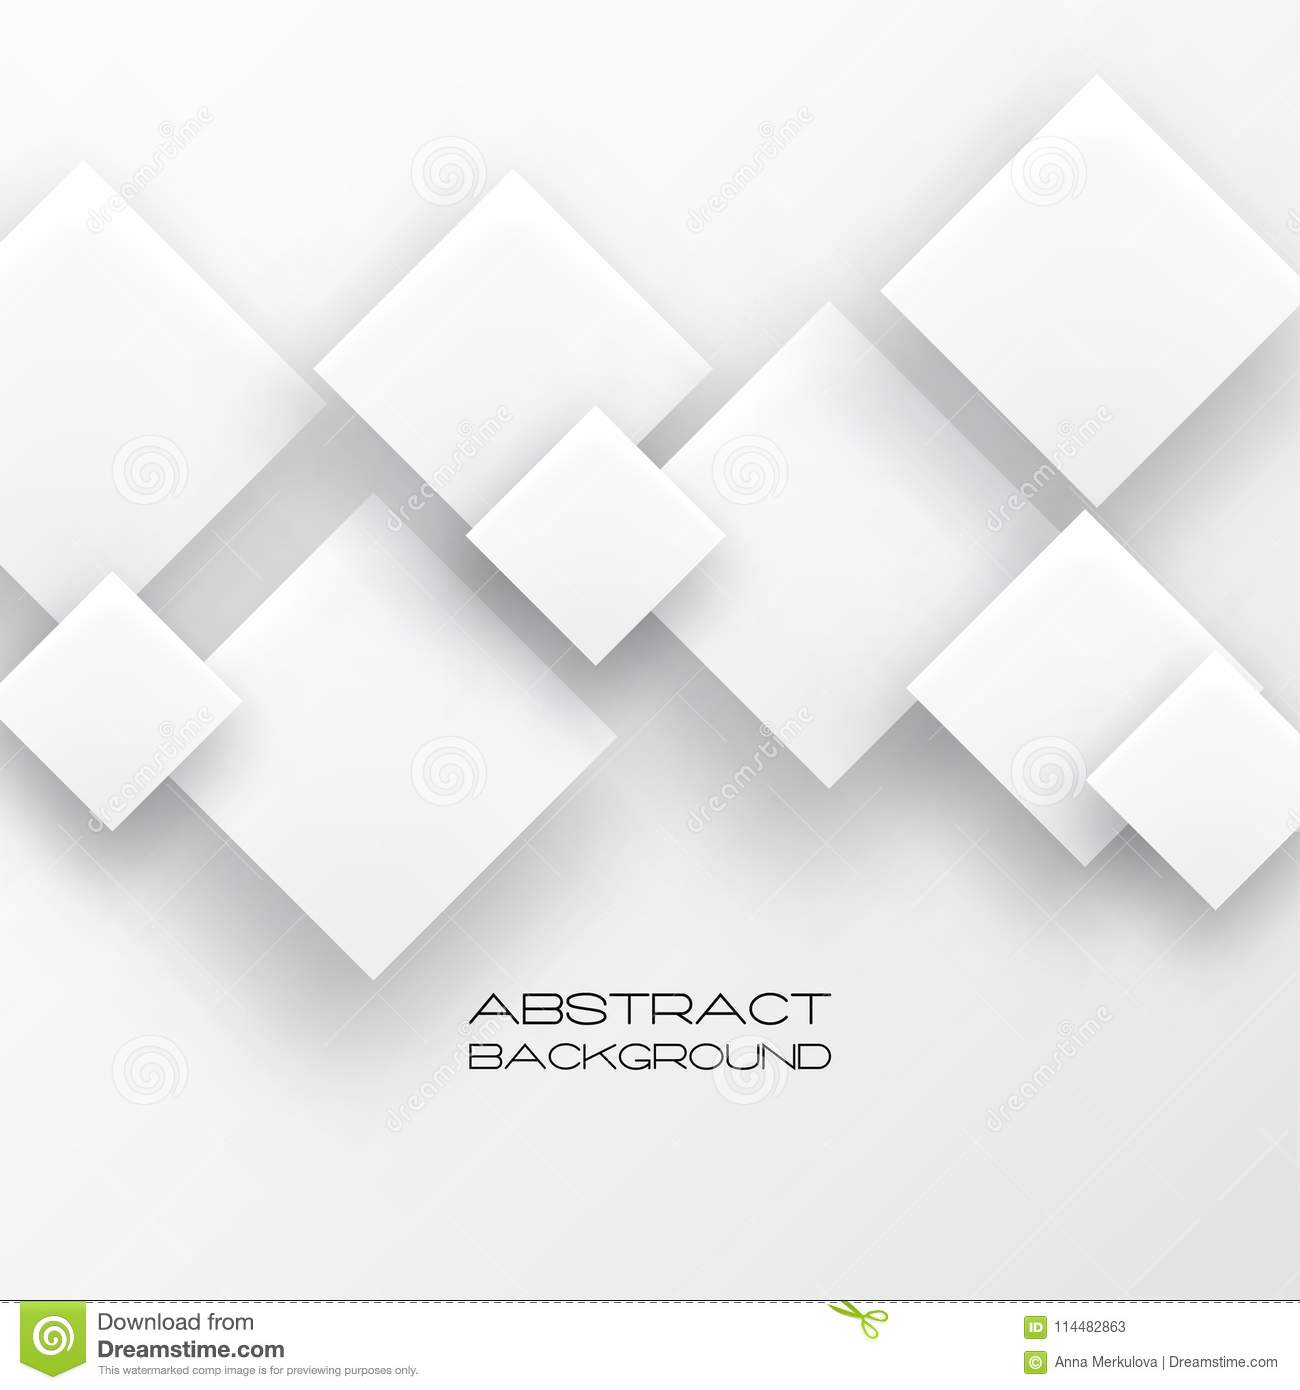 abstract 3d background with white paper geometric shapes stock